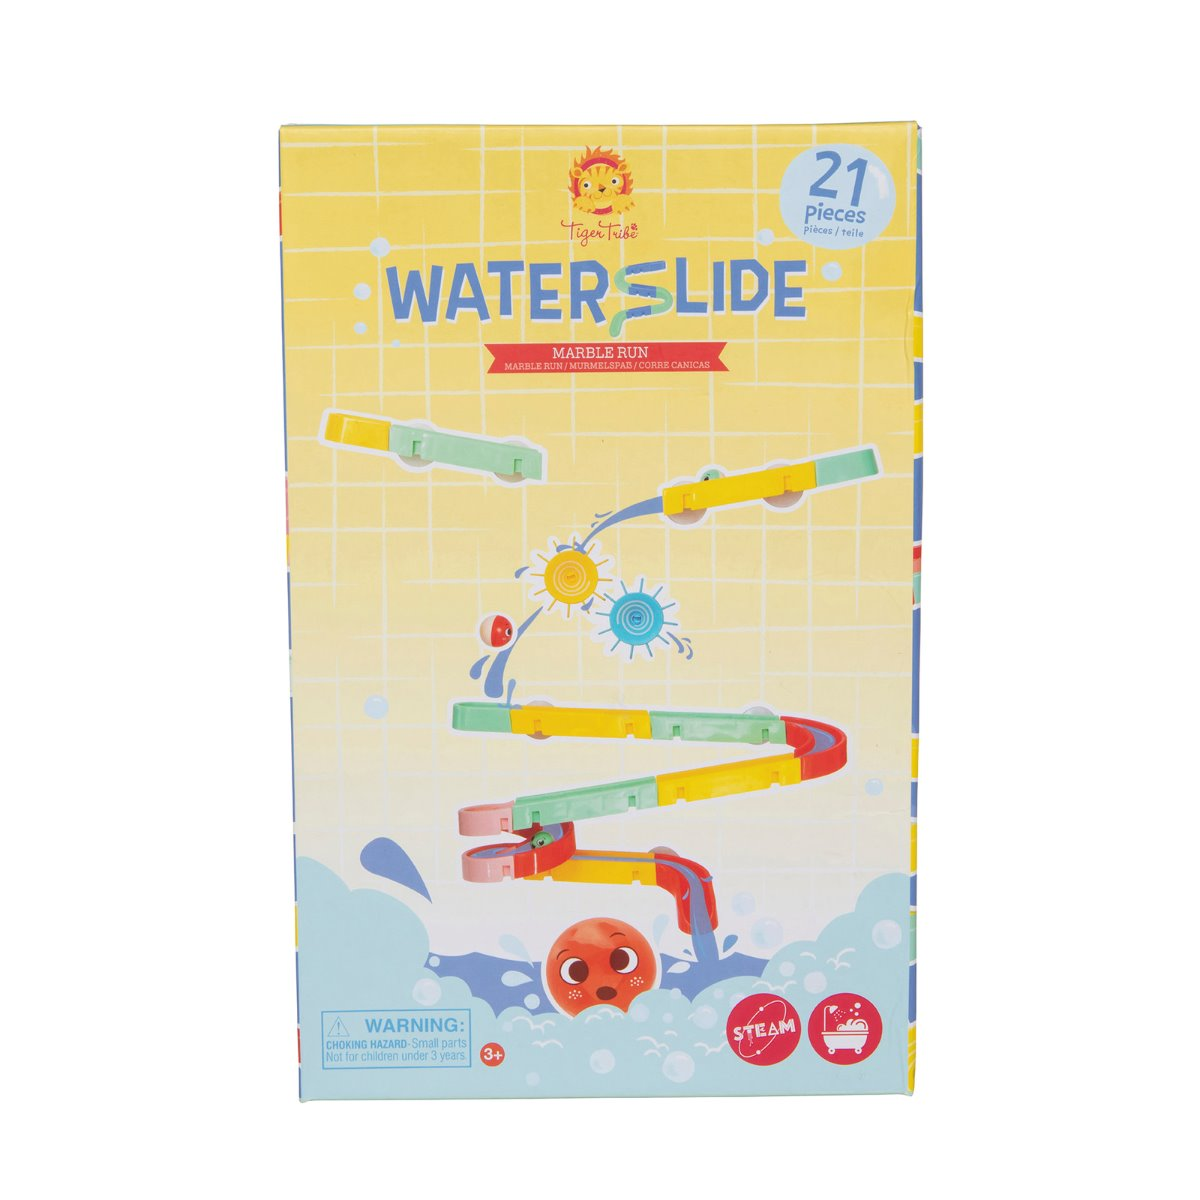 Tiger Tribe Waterslide Marble Run Bath Toy in box